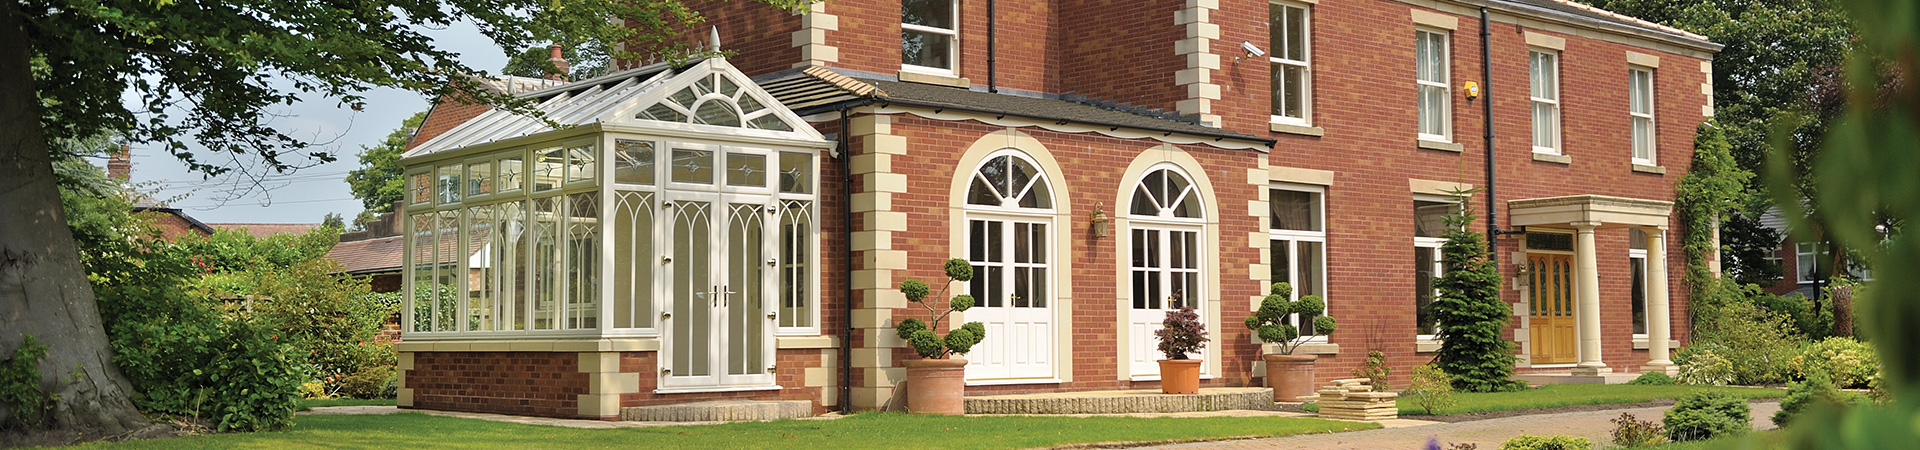 uPVC Cream Victorian Conservatory Staffordshire and Stoke-on-Trent